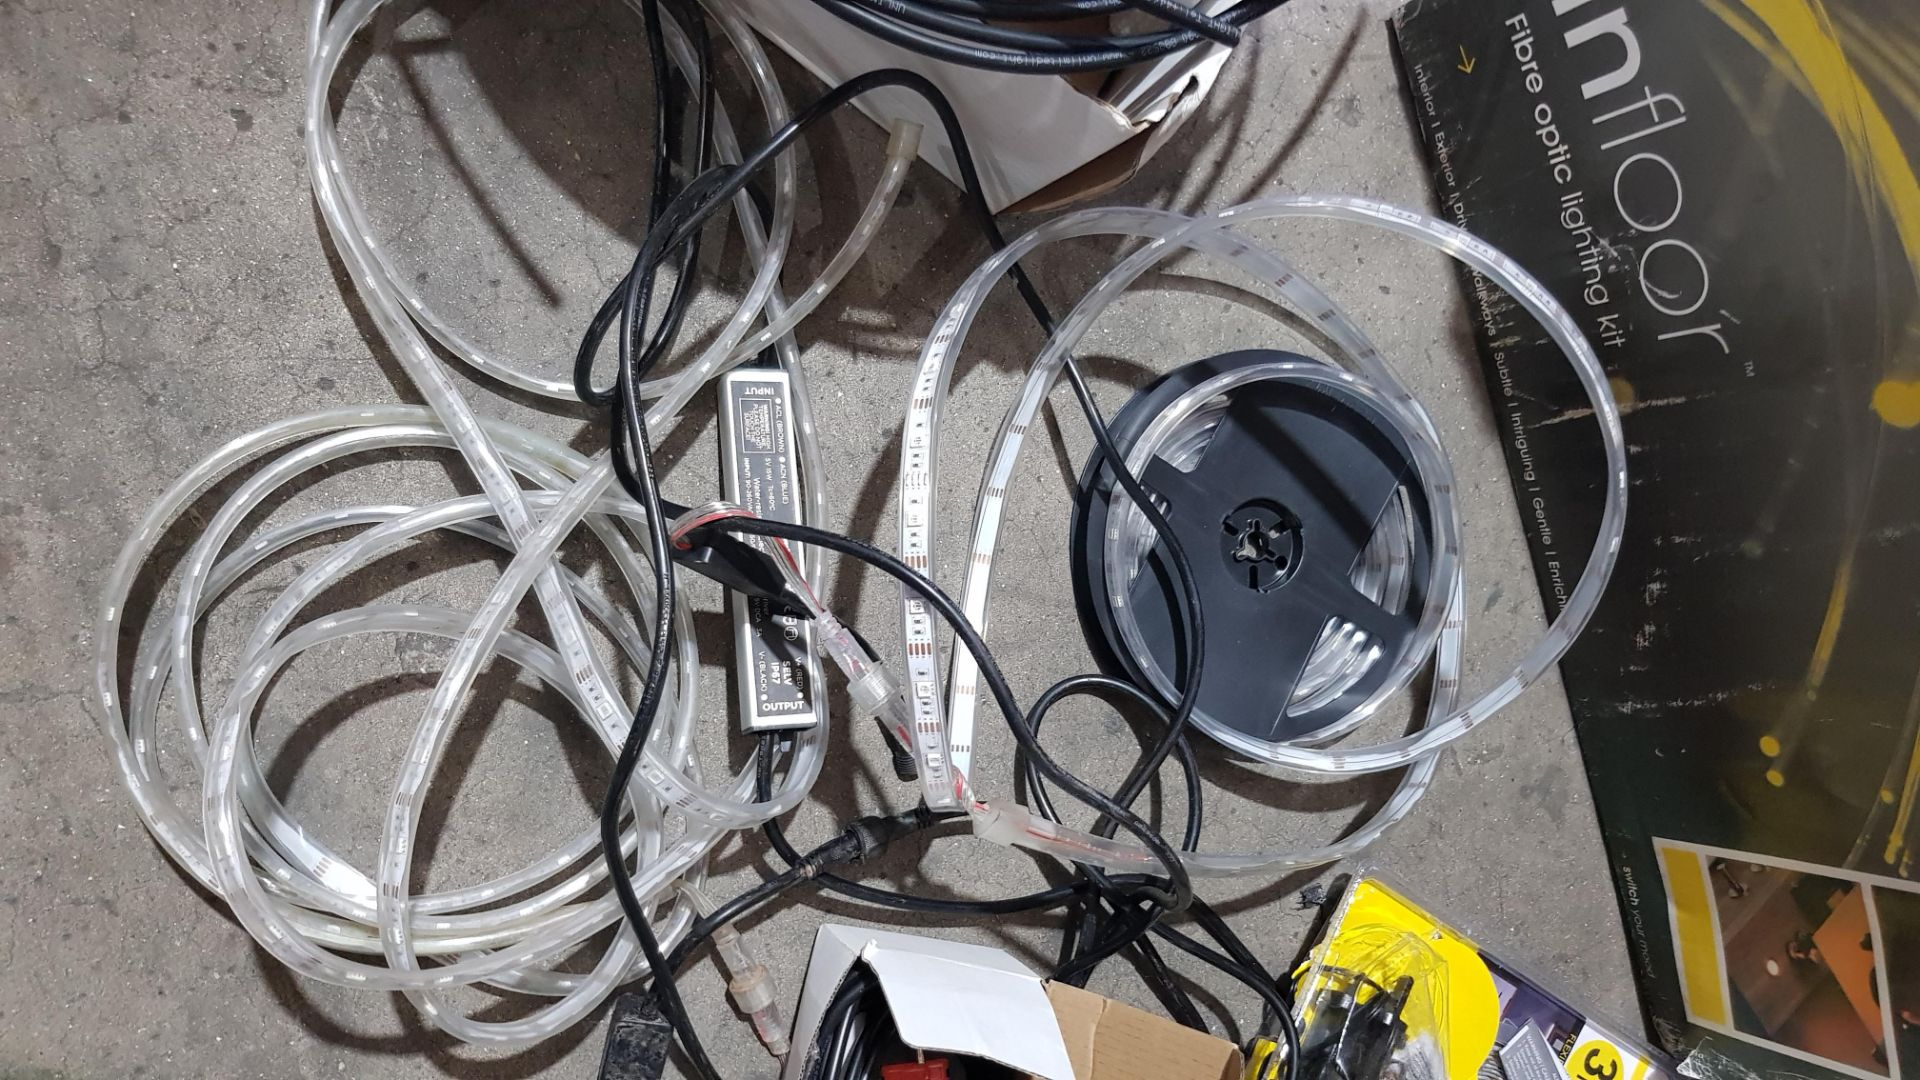 (3F) Fibre Optic / LED Lighting Lot. To Include 1x Optic Lighting InFloor Fibre Optic Lighting Kit. - Image 9 of 12